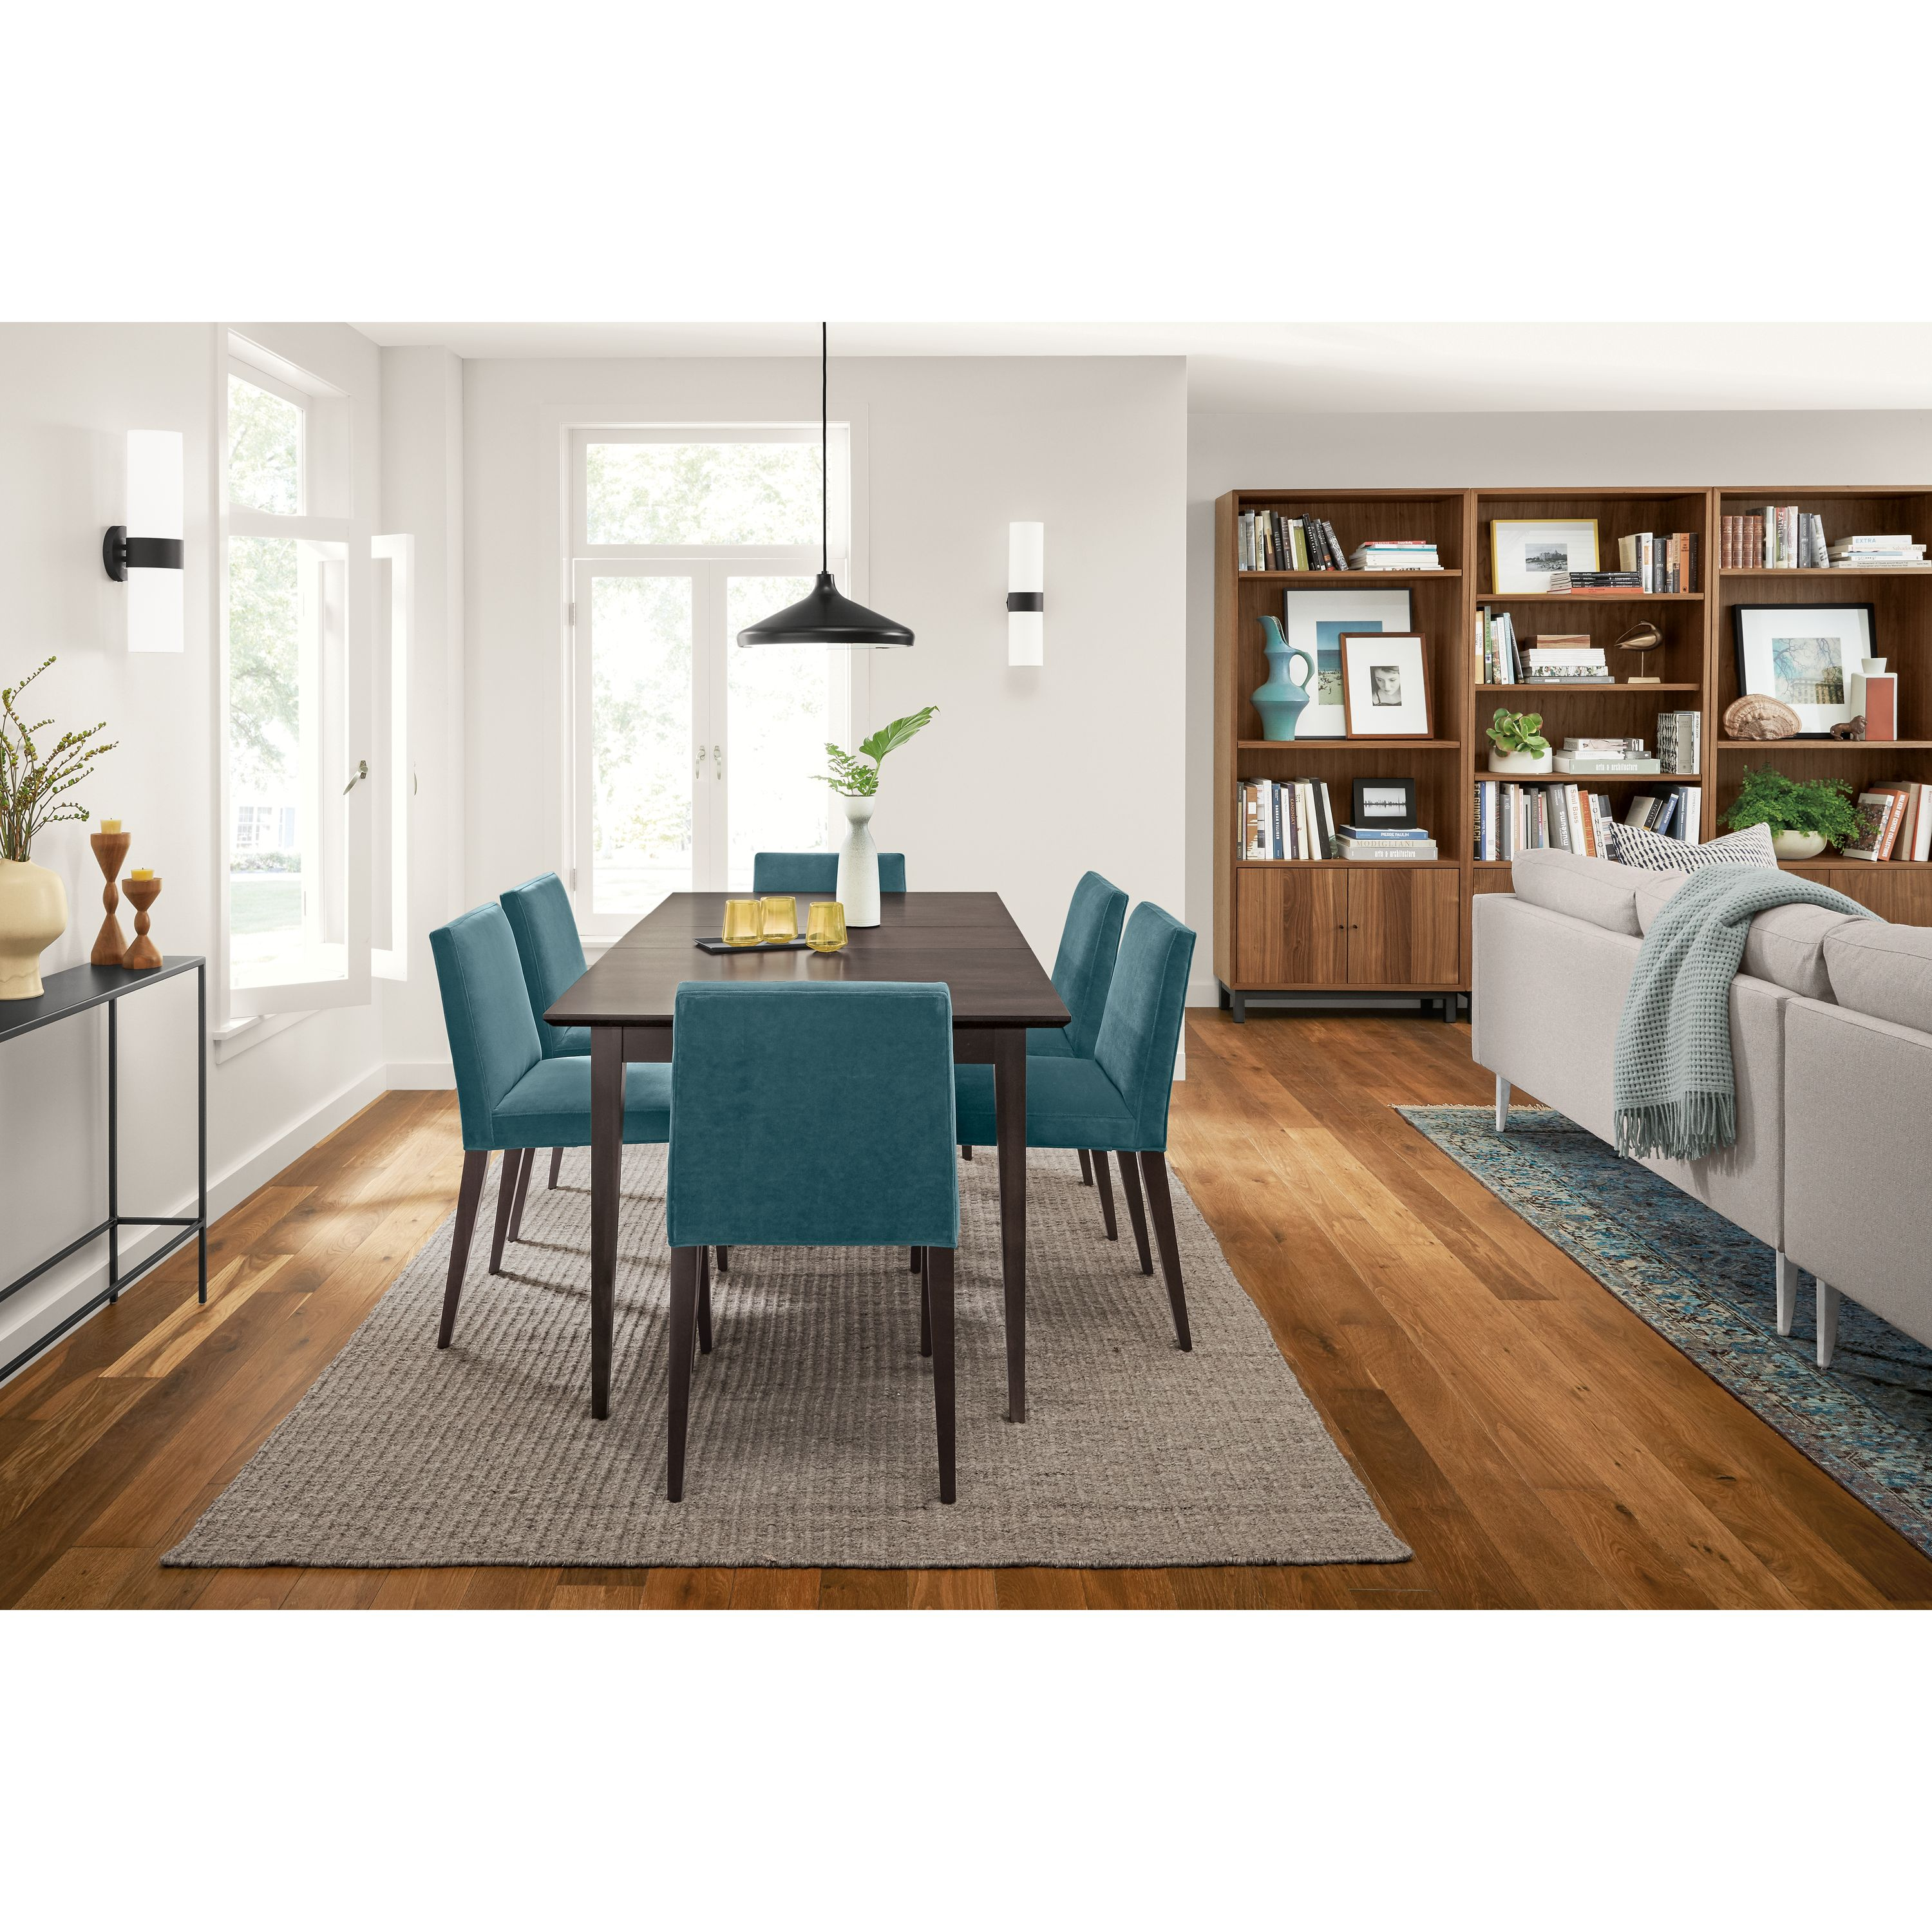 Room Board Slim Console Tables In Recycled Natural Steel Dining Side Chairs Slim Console Table